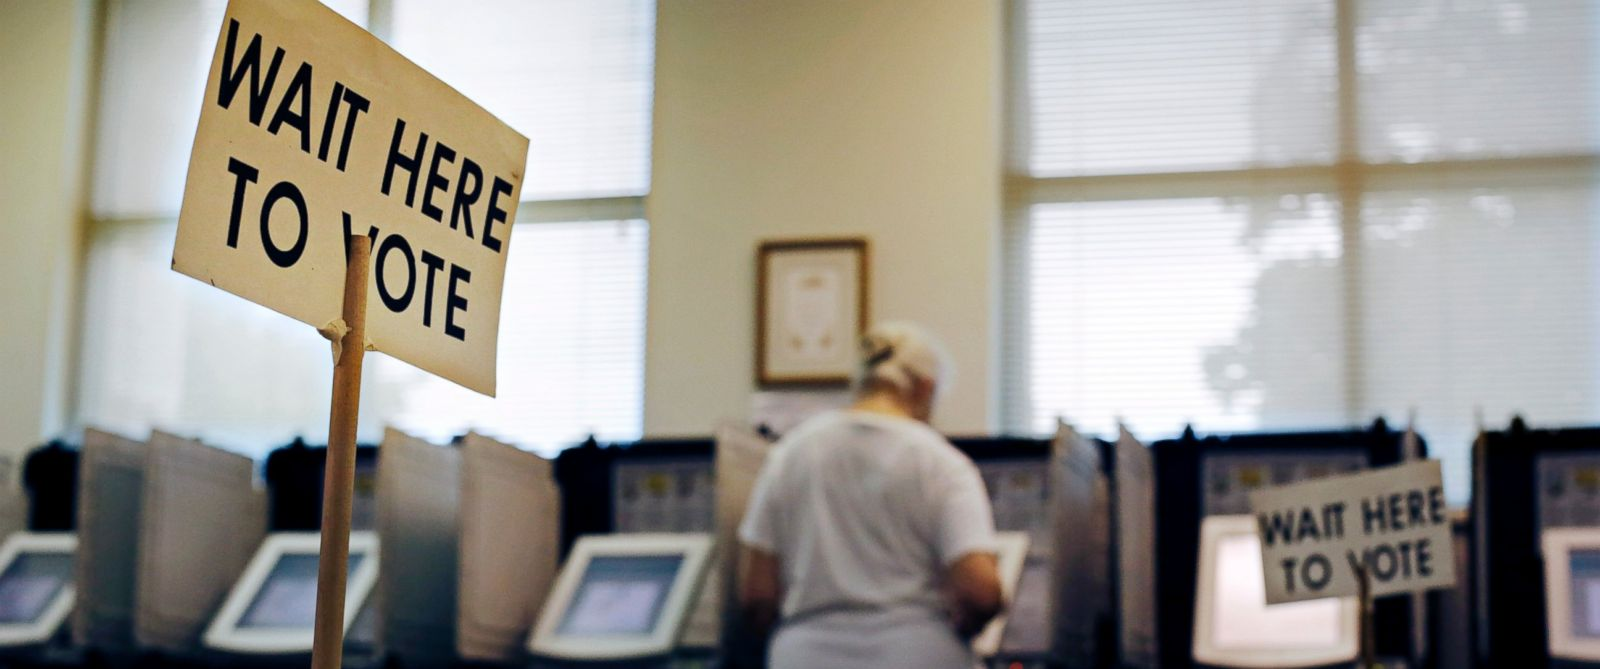 PHOTO: A sign greets voters before they step up to cast their ballot at a polling site in Atlanta, Georgia, July 22, 2014.